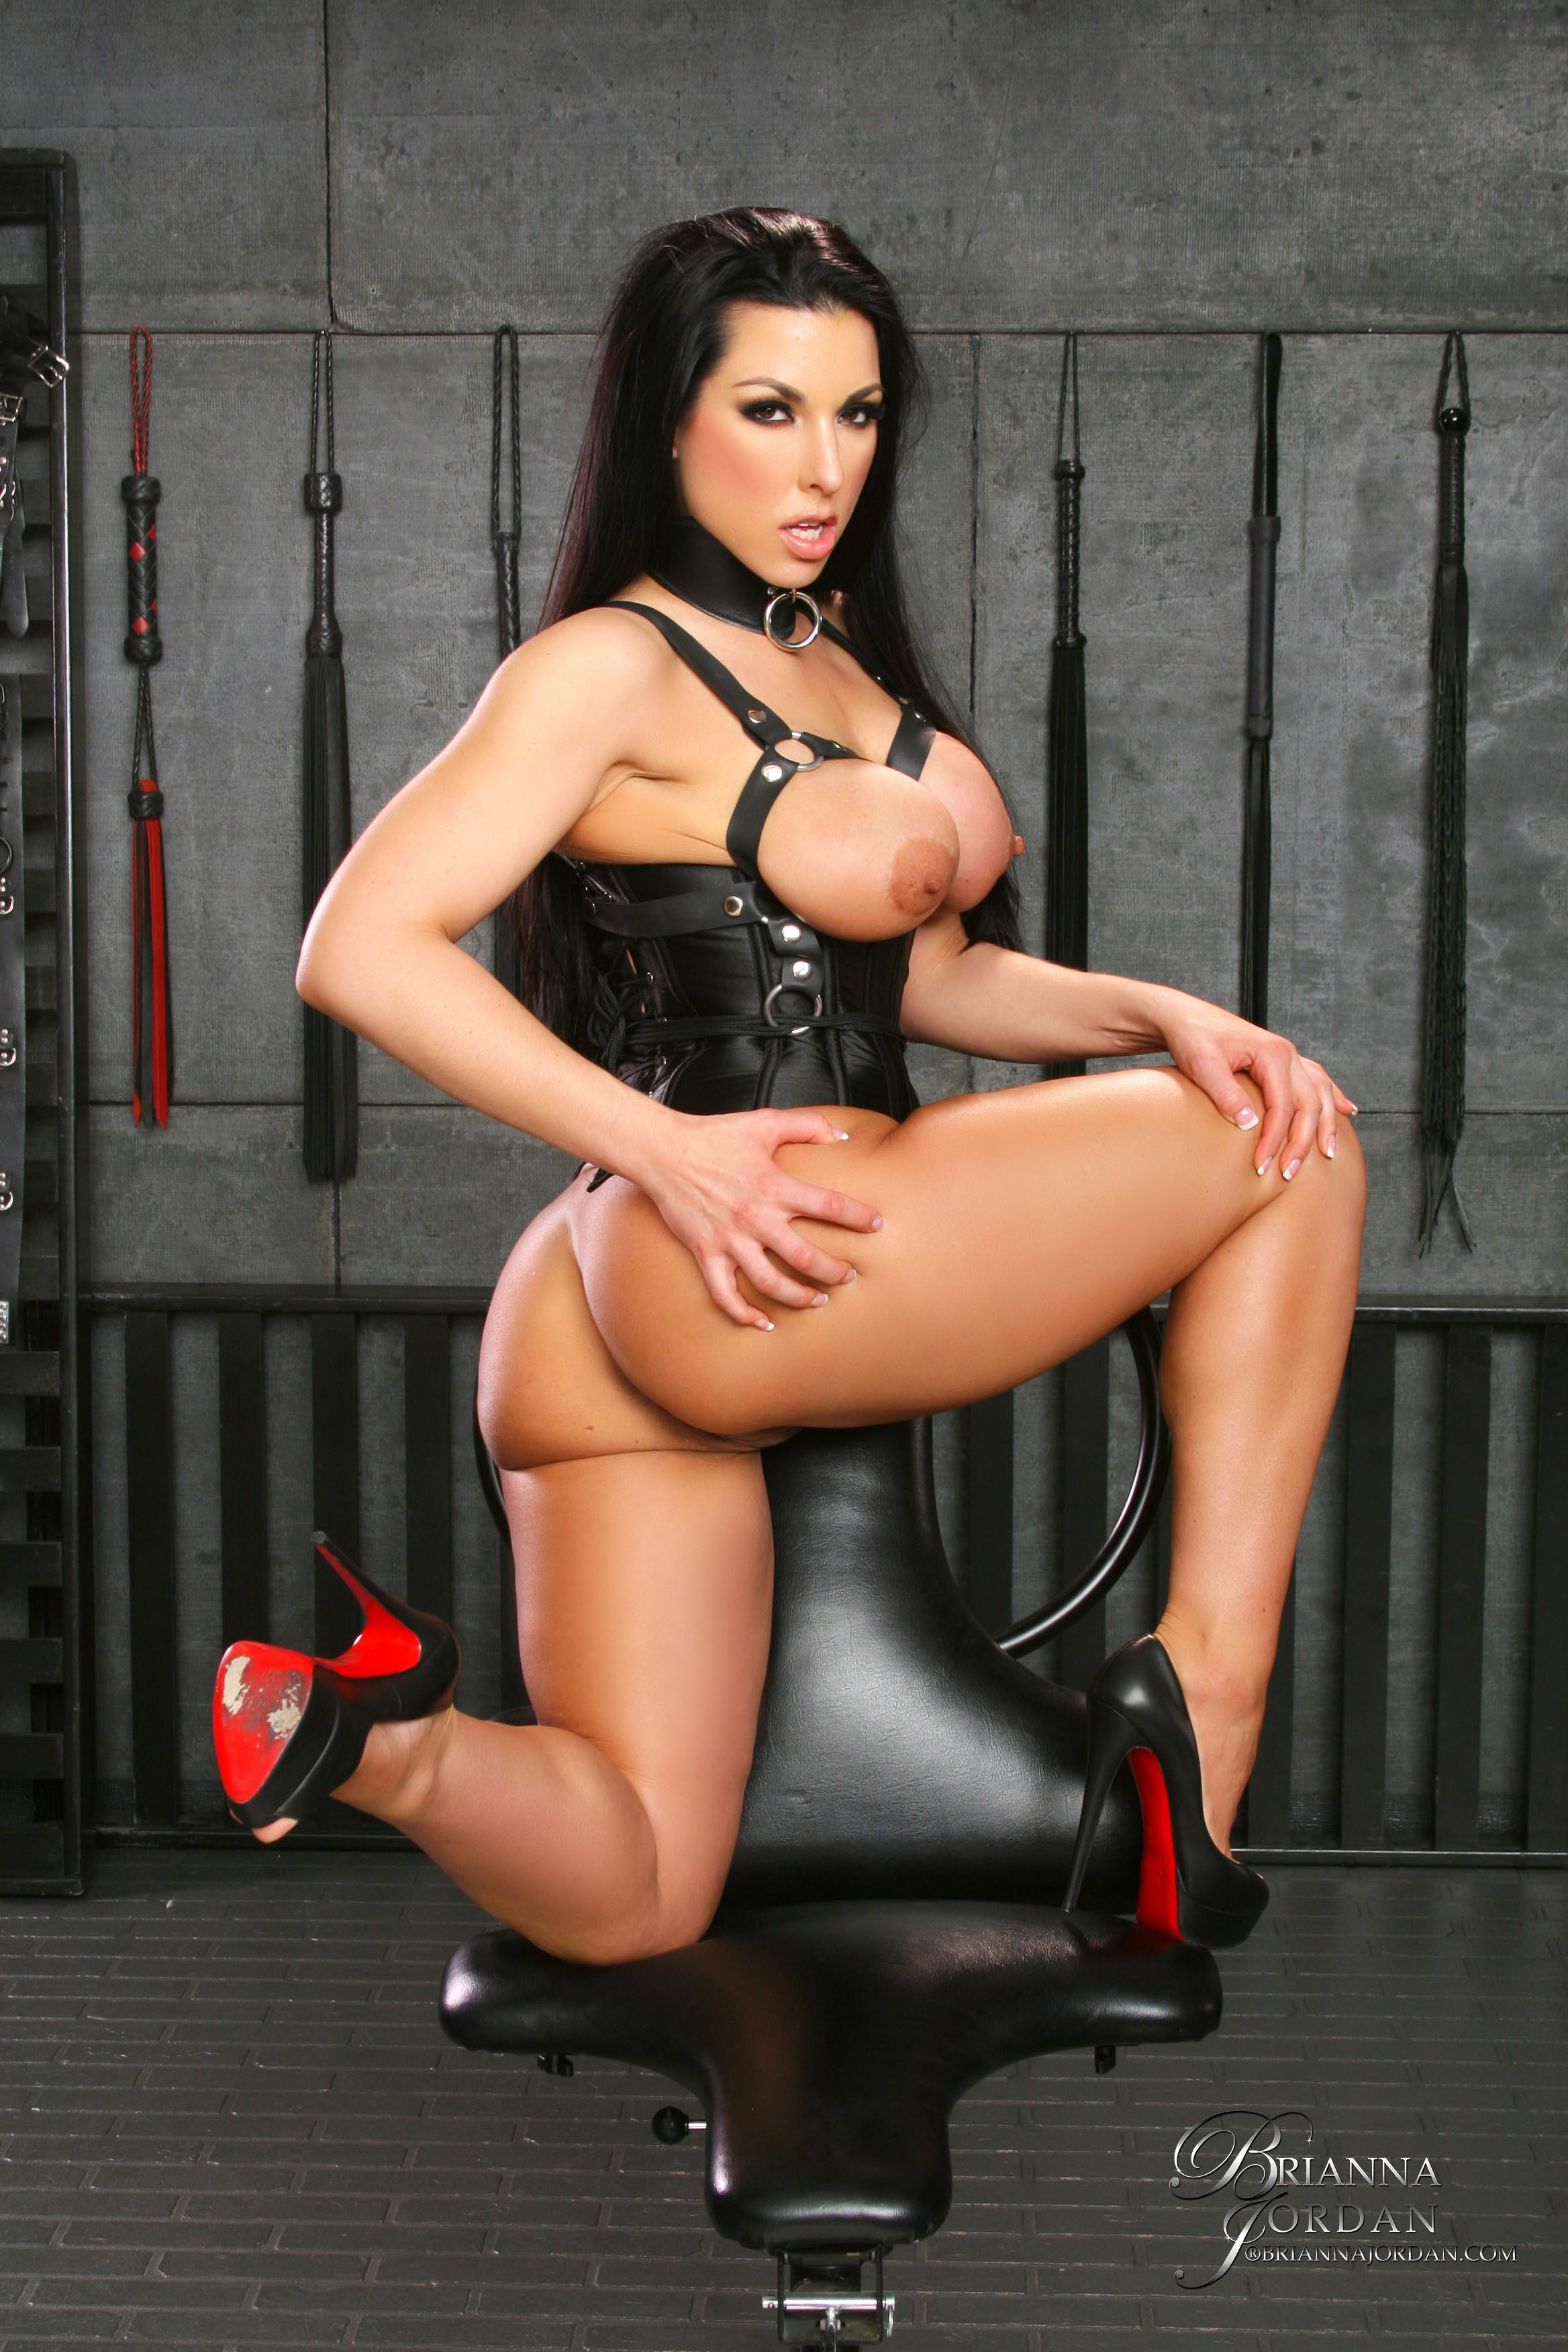 Riding my Sybian in my catsuit while